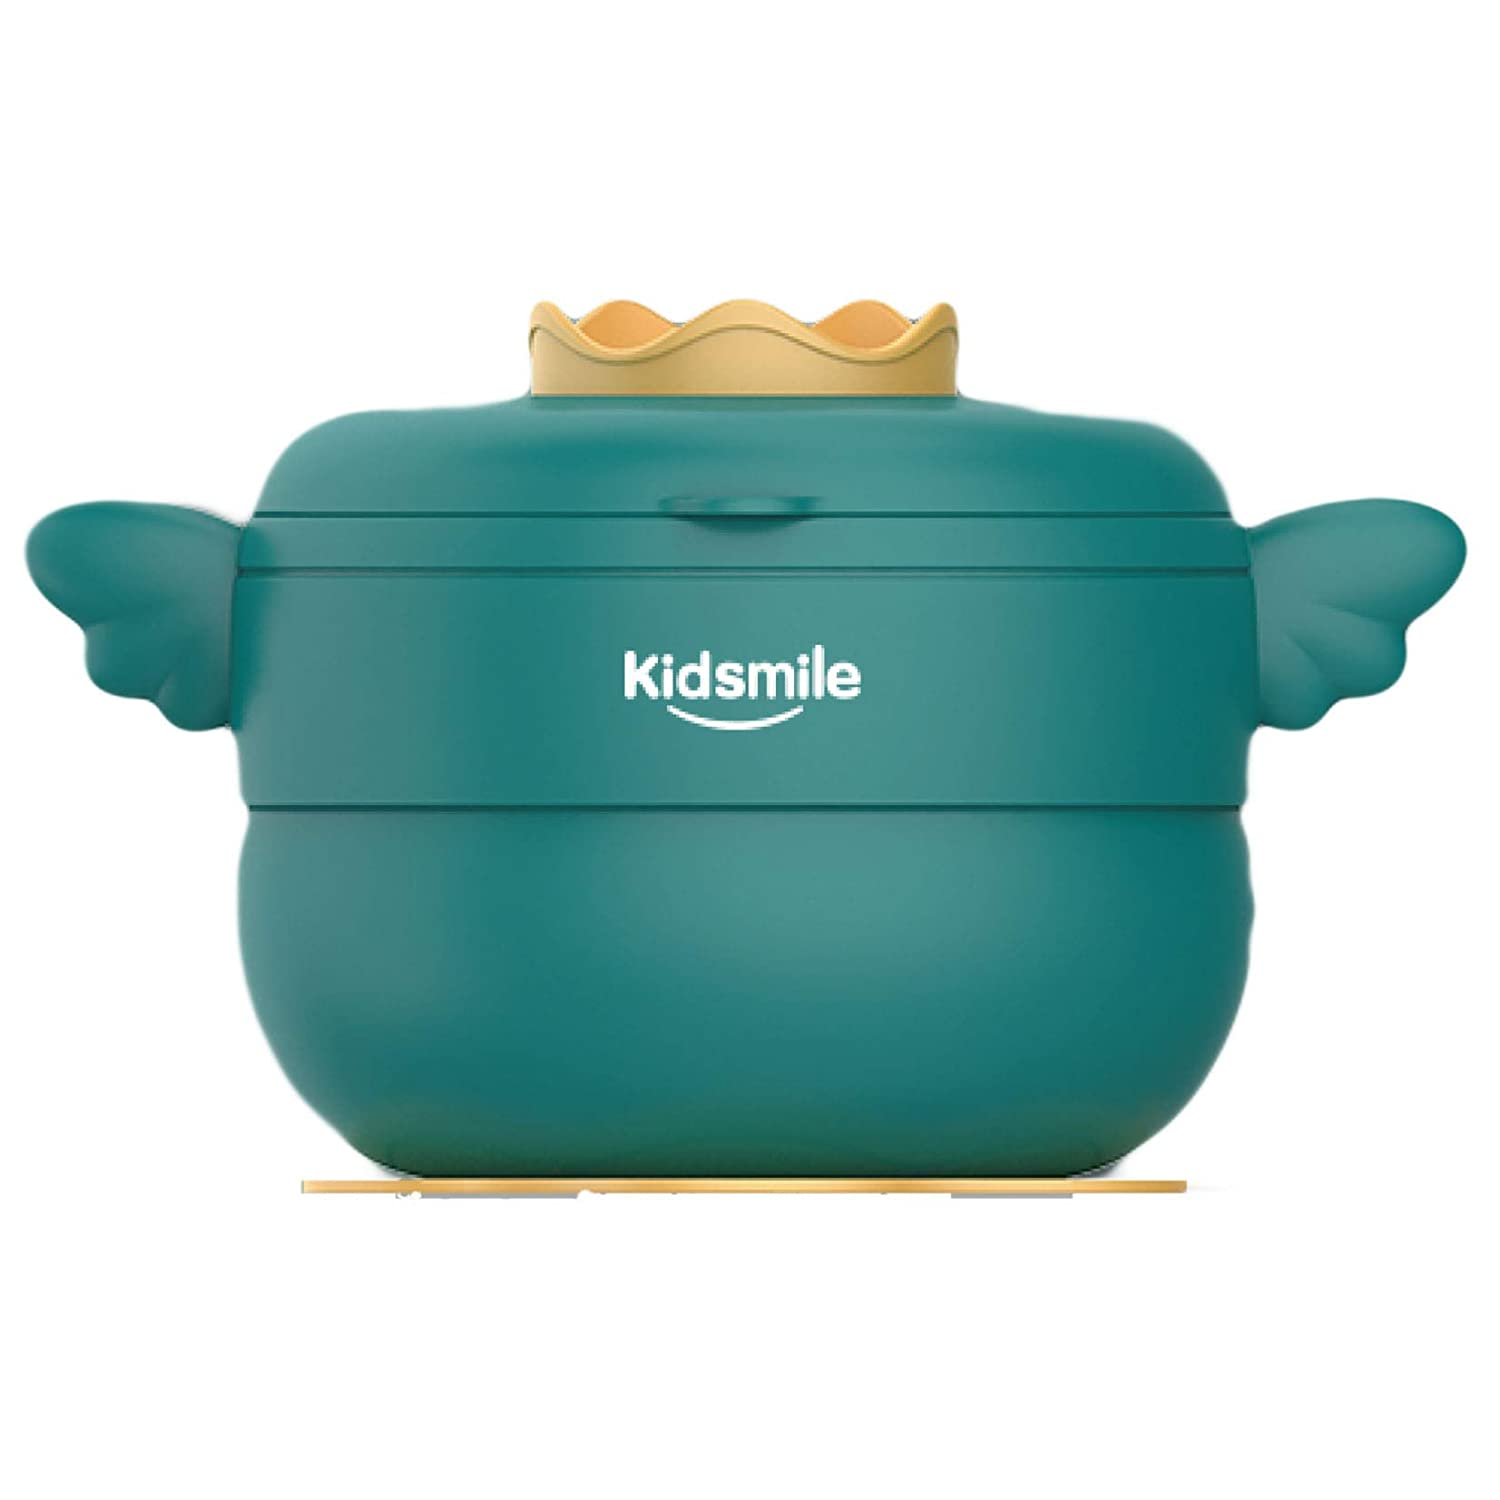 Kidsmile Baby Warming Bowls for Feeding Toddler and Kids with Firming Suction Dishes and Grinding fuction